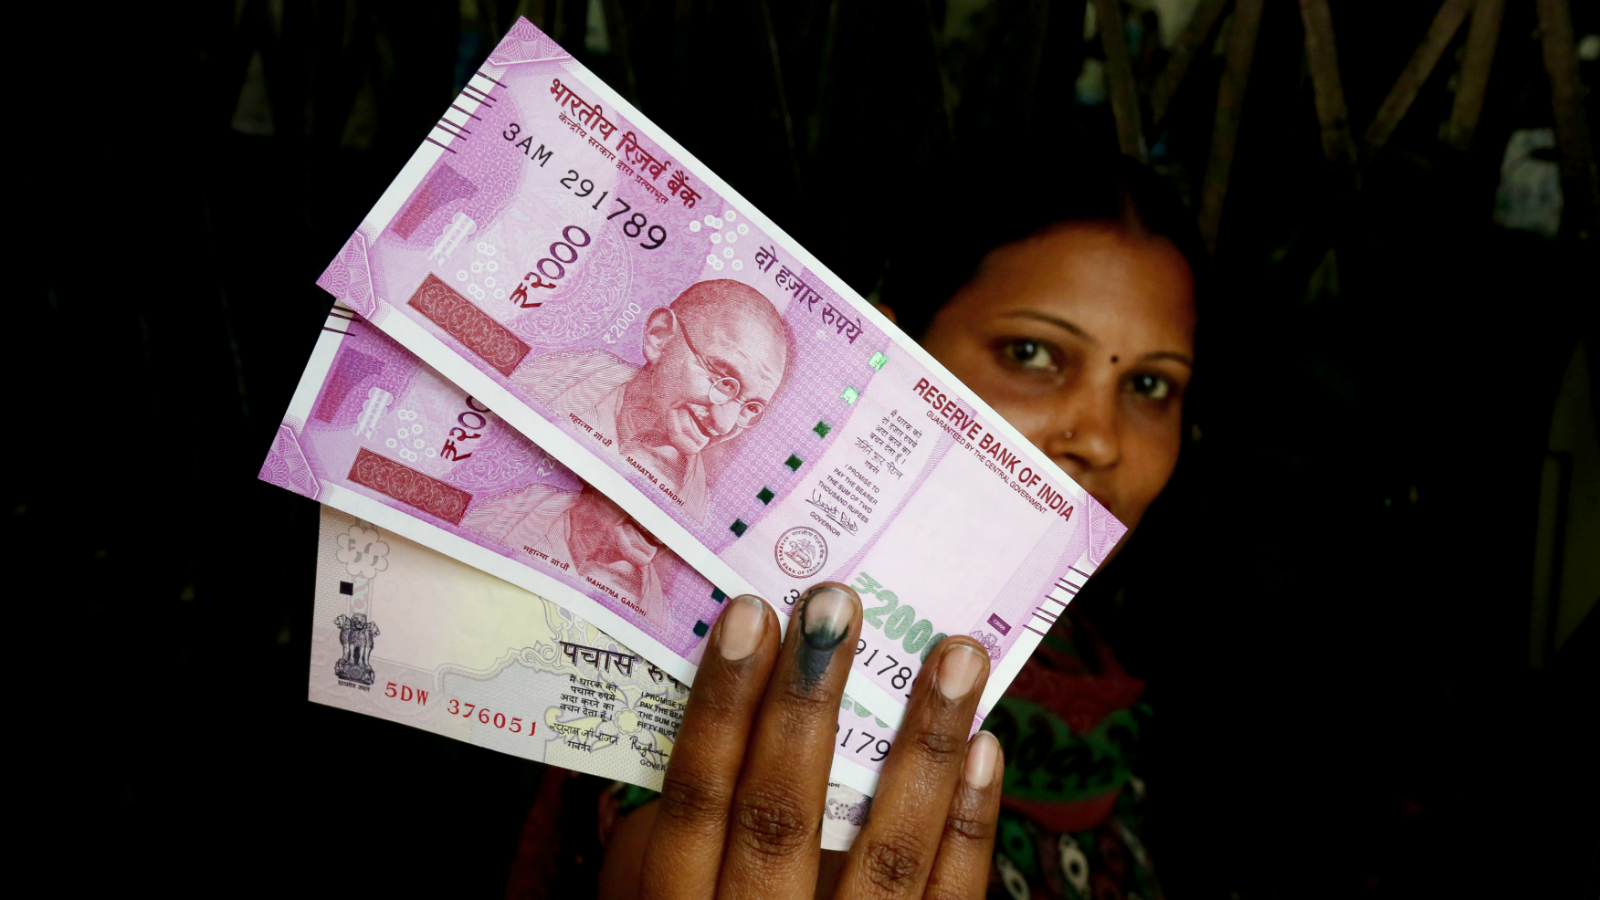 epa05633401 An Indian woman shows her inked finger as she holds new Indian rupee notes exchanged at a bank in Bangalore, India, 16 November 2016. Indian Bank officials started leaving an ink mark on fingers of people who have exchanged their discontinued Rupee notes for new ones. Indian Prime Minister Narendra Modi announced the elimination of the 500 and 1,000 rupee bills (7.37 and 14.73 US dollars, respectively), hours before the measure took effect at midnight 08 November, for the purpose of fighting against 'black money' (hidden assets) and corruption in the country. The decision sparked some protests, while storekeepers complained about dwindling sales because many citizens lack the cash to buy the most basic products, as lines get longer at ATMs and banks.